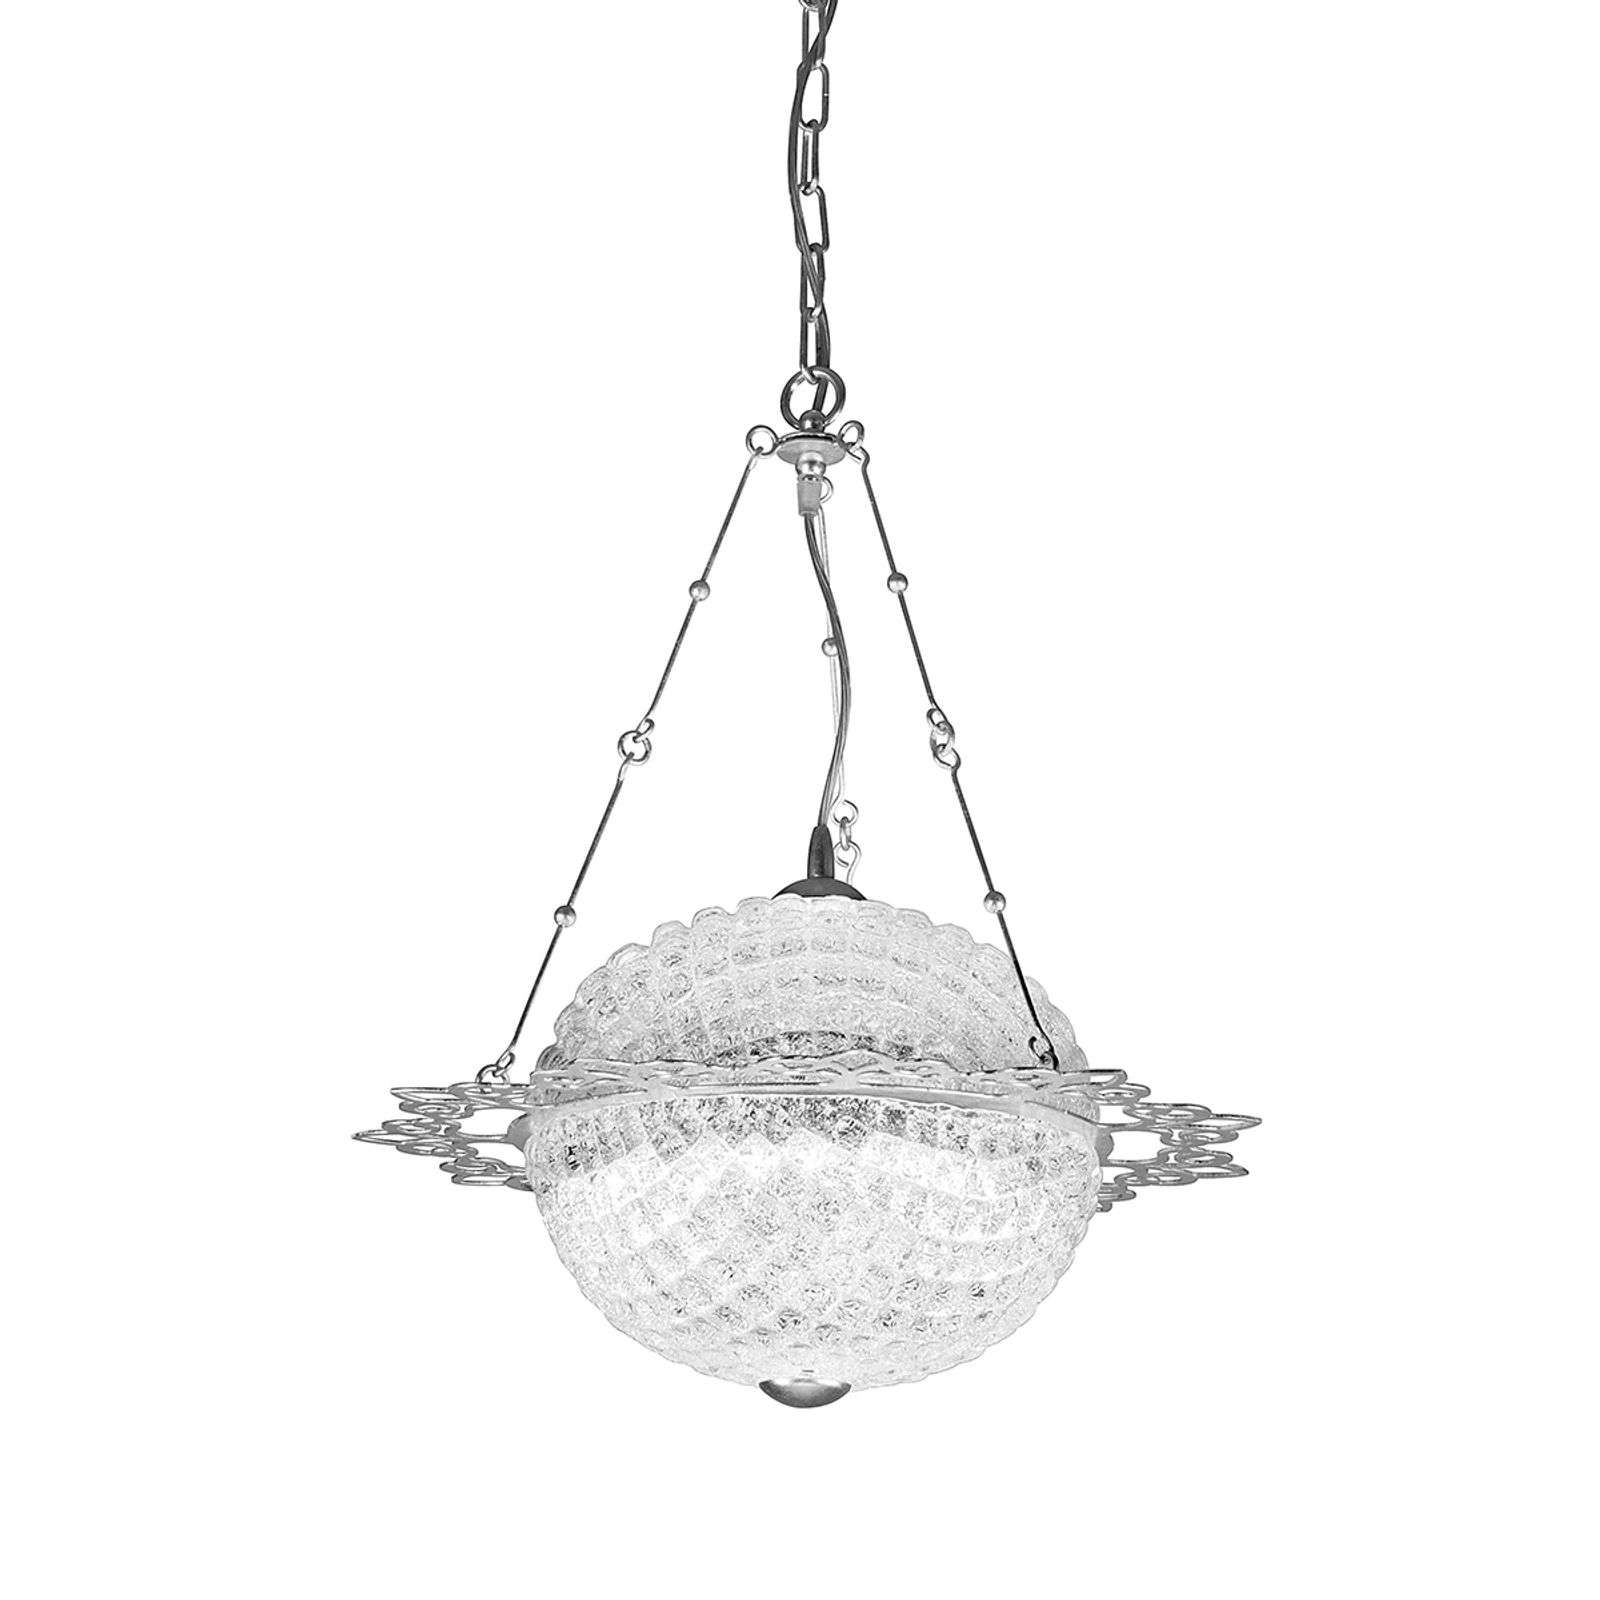 Brillare - suspension LED fascinante, ronde